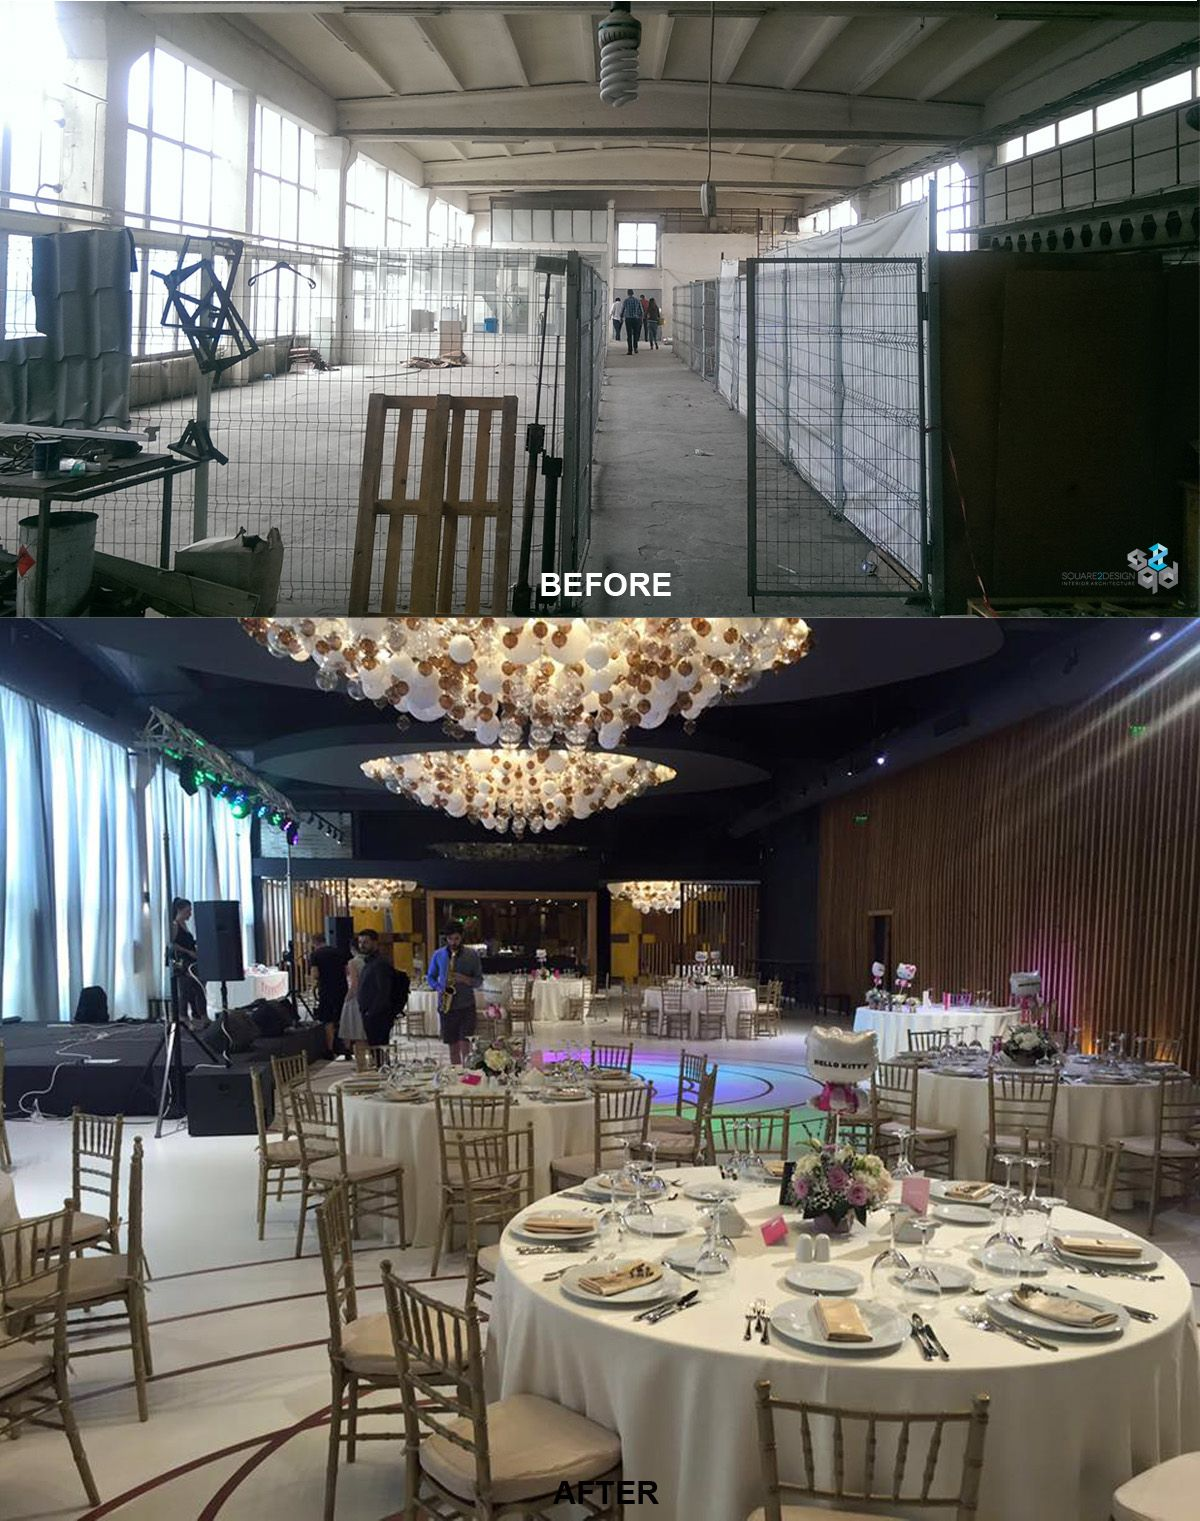 #before #after #interiordesign #wedding #salon #venue #bucharest #square2design #modern #custommade #chandeliers